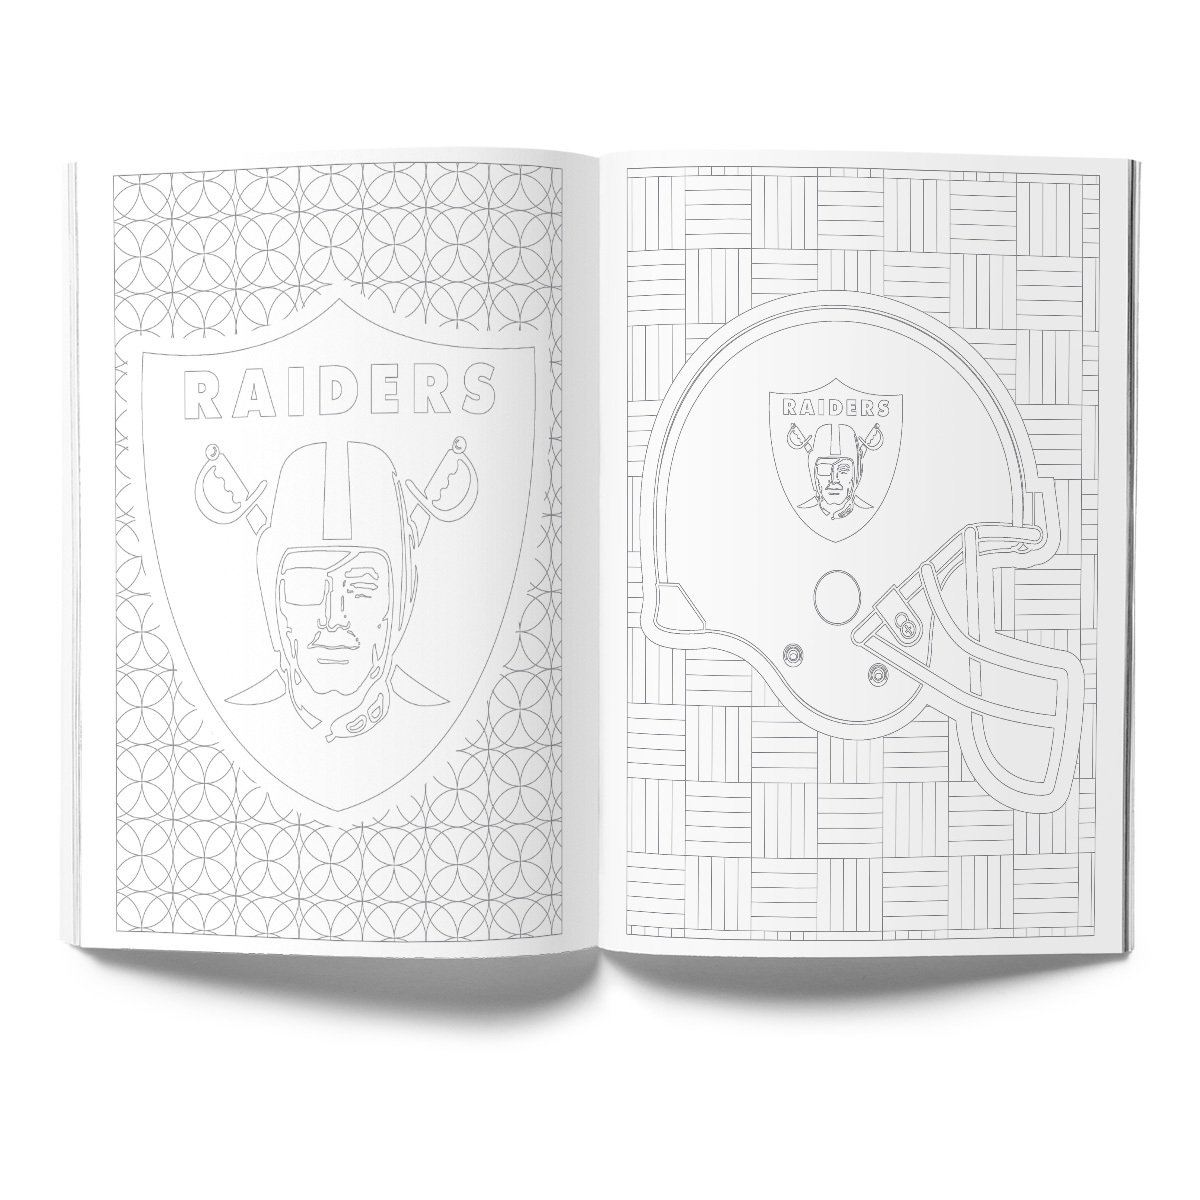 Oakland Raiders Adult Coloring Book